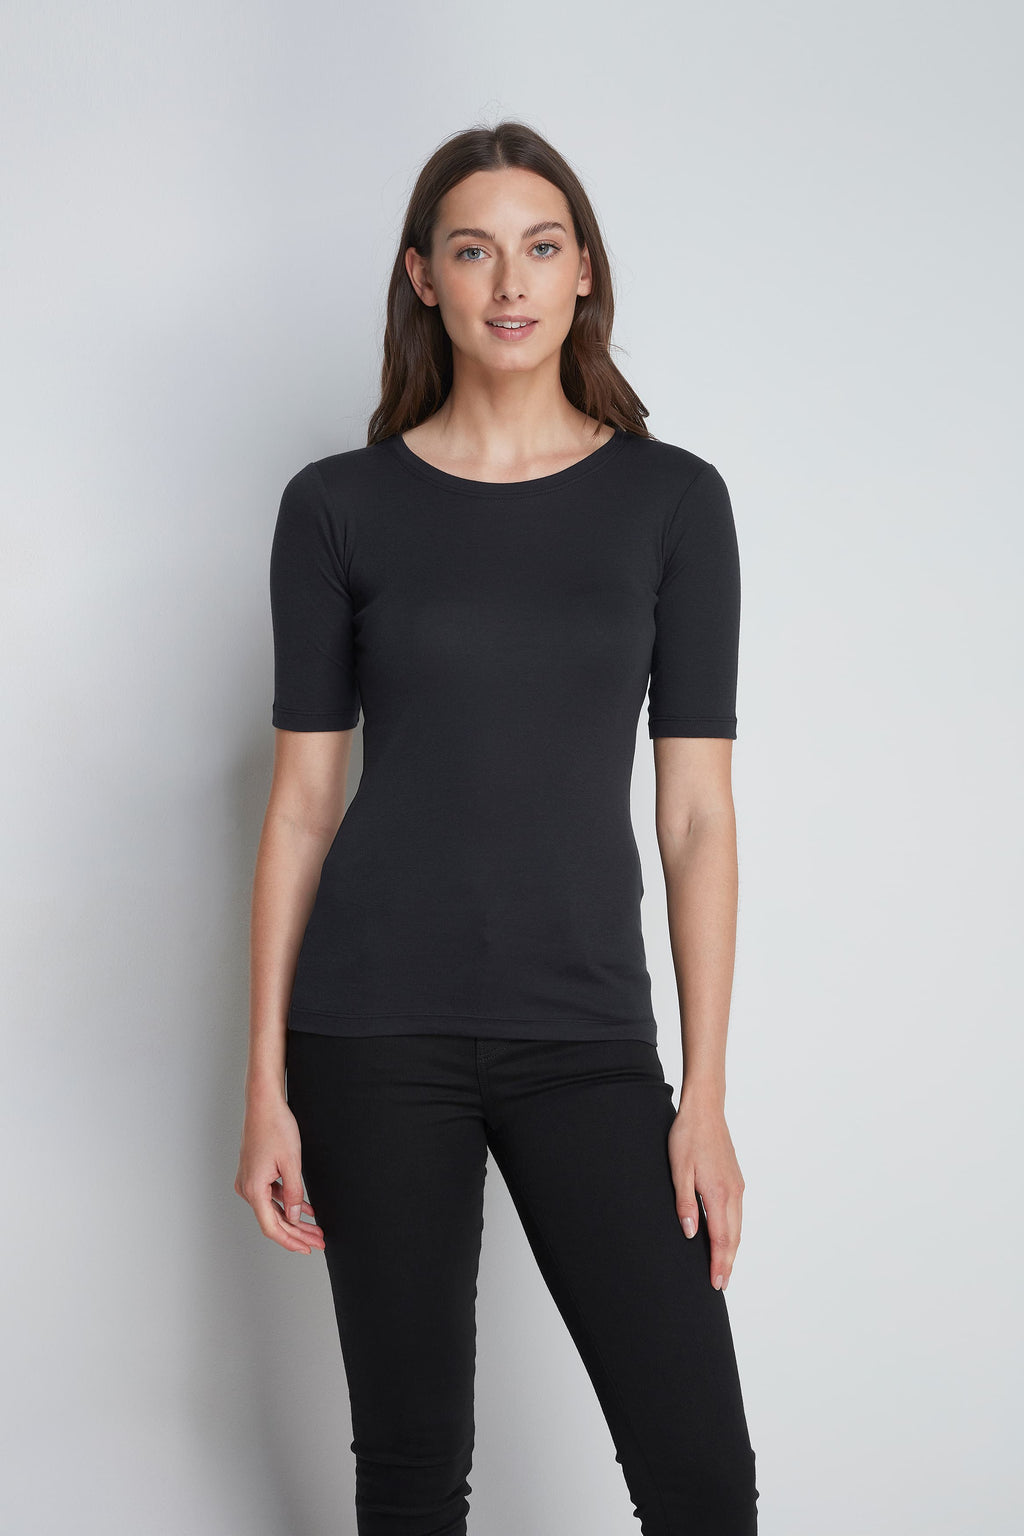 High Quality Half Sleeve Crew Neck T-Shirt - Comfortable Crew Neck - Luxury Half Sleeve T-Shirt - Black Half Sleeve Crew Neck T-Shirt